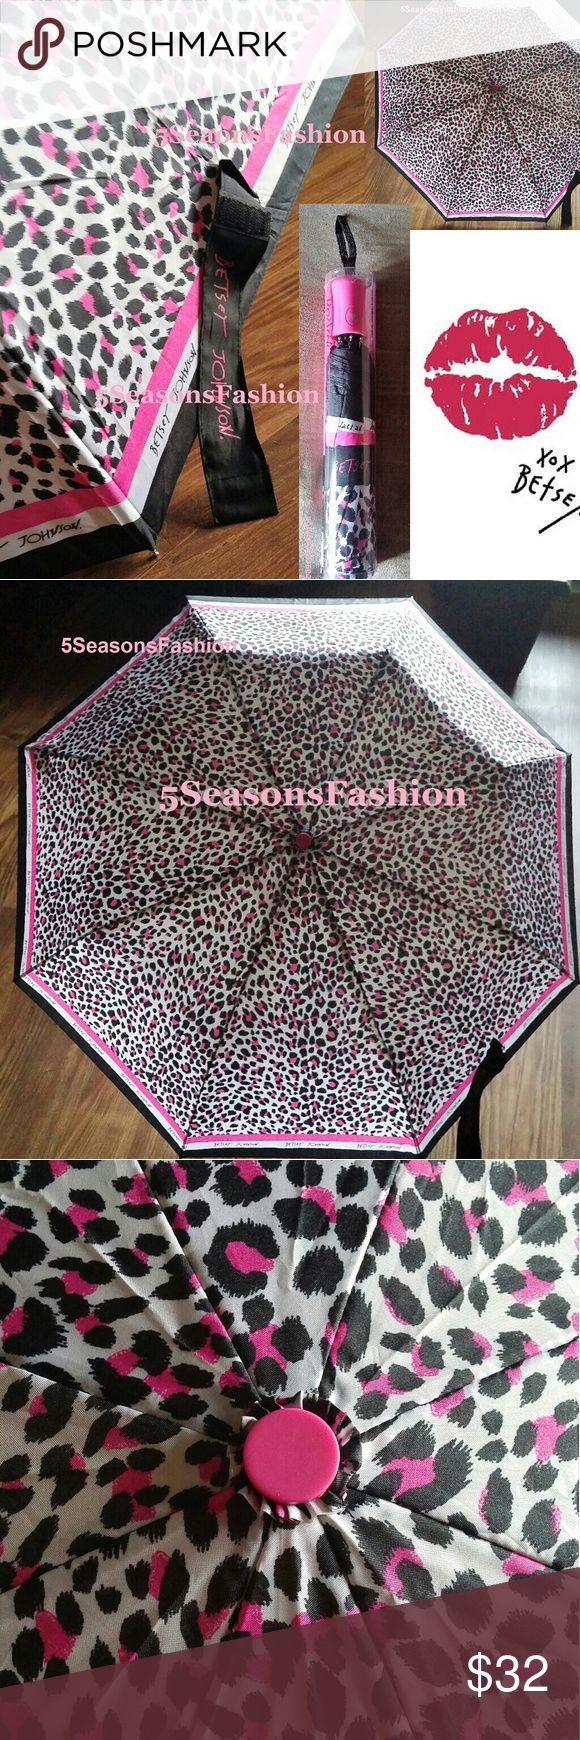 "BETSEY JOHNSON Leopard Print AUTOMATIC Umbrella New in its original packaging. Stunning pink and black leopard print umbrella by Betsey Johnson. 42"" automatic. Pink matt coated handle. Absolute must have for every fashionista! Betsey Johnson Accessories Umbrellas"